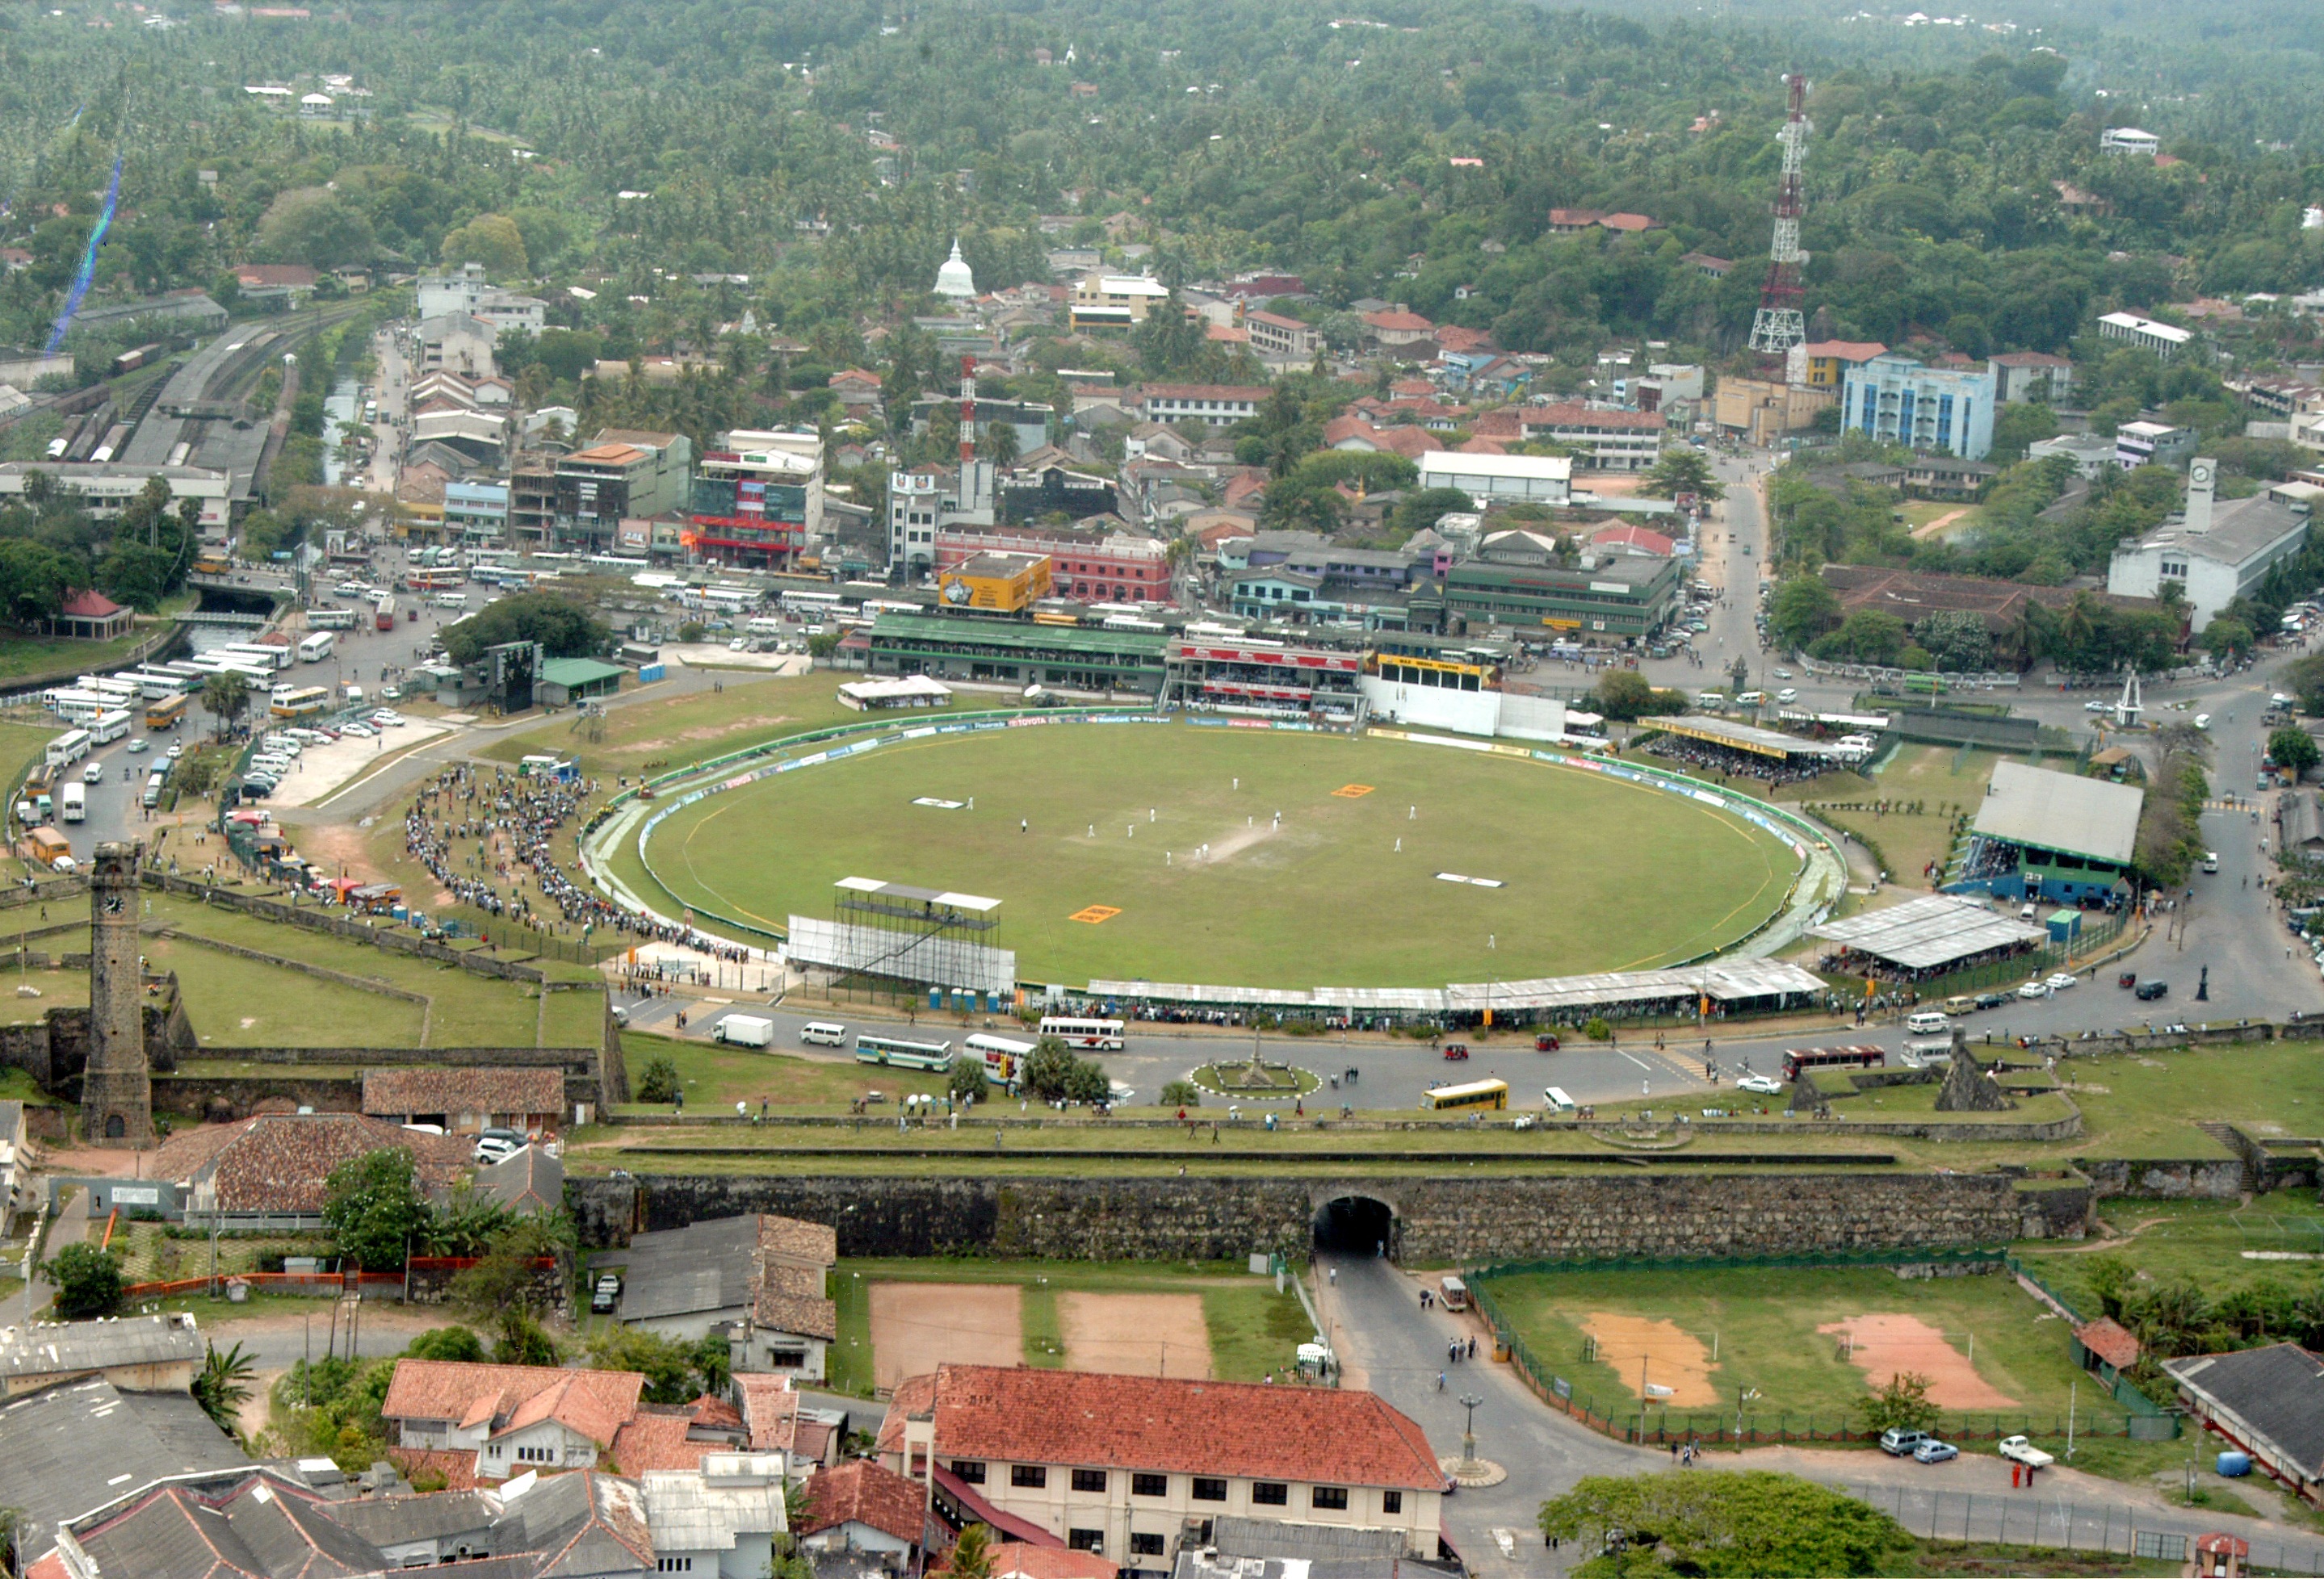 essaying cricket sri lanka and beyond Get the latest cricket news, previews, analysis, opinions and more sri lanka won the last time these teams played together, but can they do it again by abhay almal.